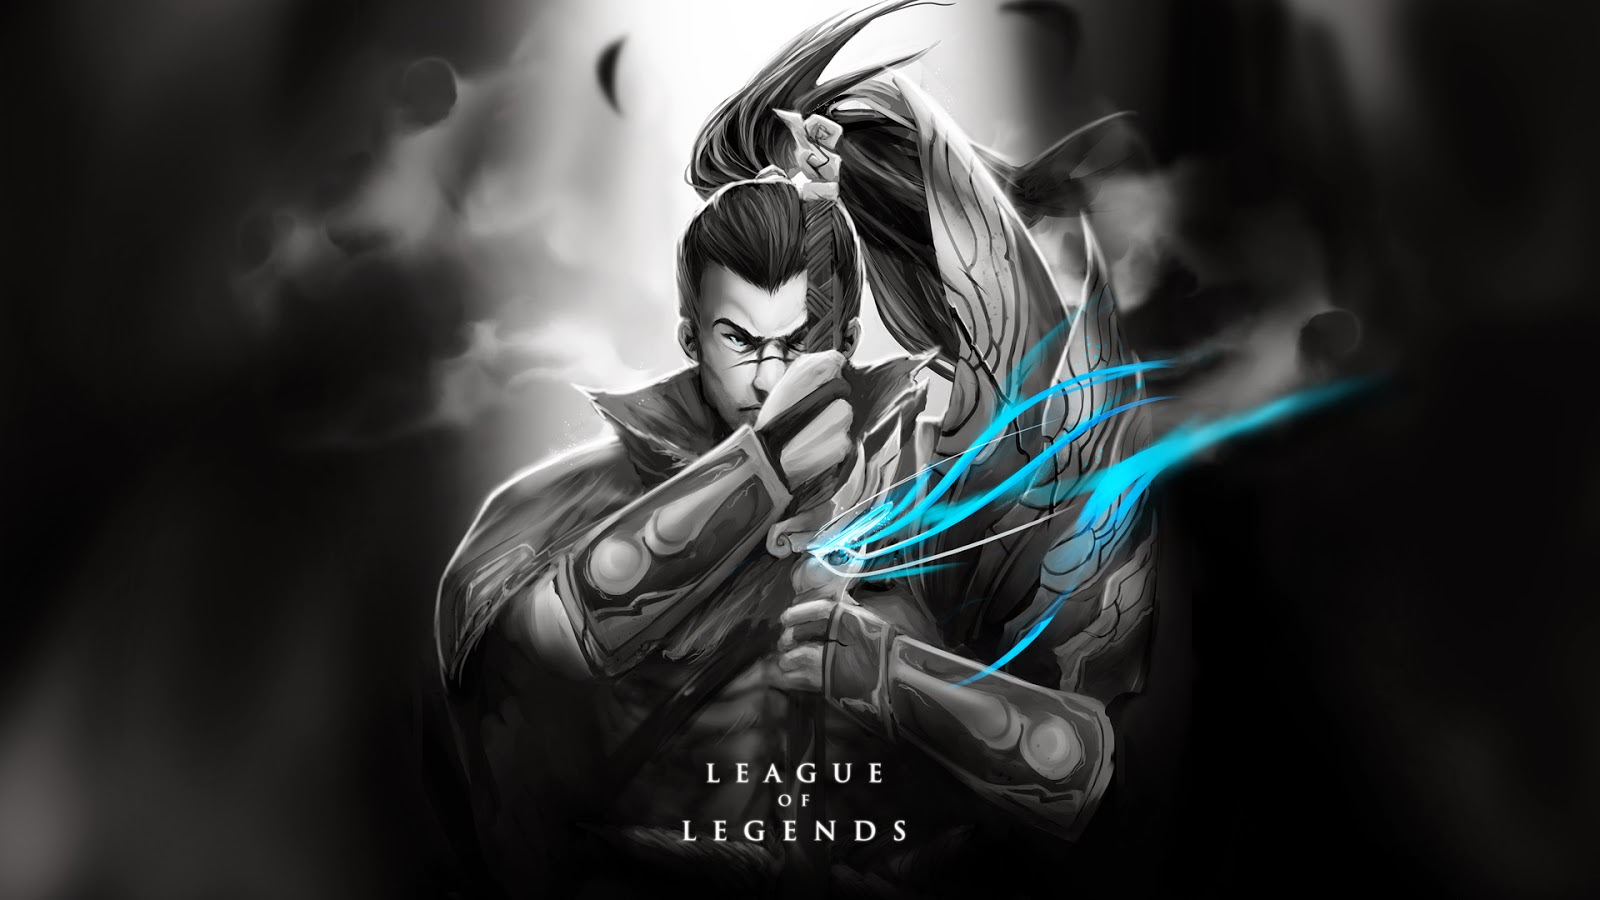 Zed League Of Legends Wallpaper Zed Desktop Wallpaper 1600x900